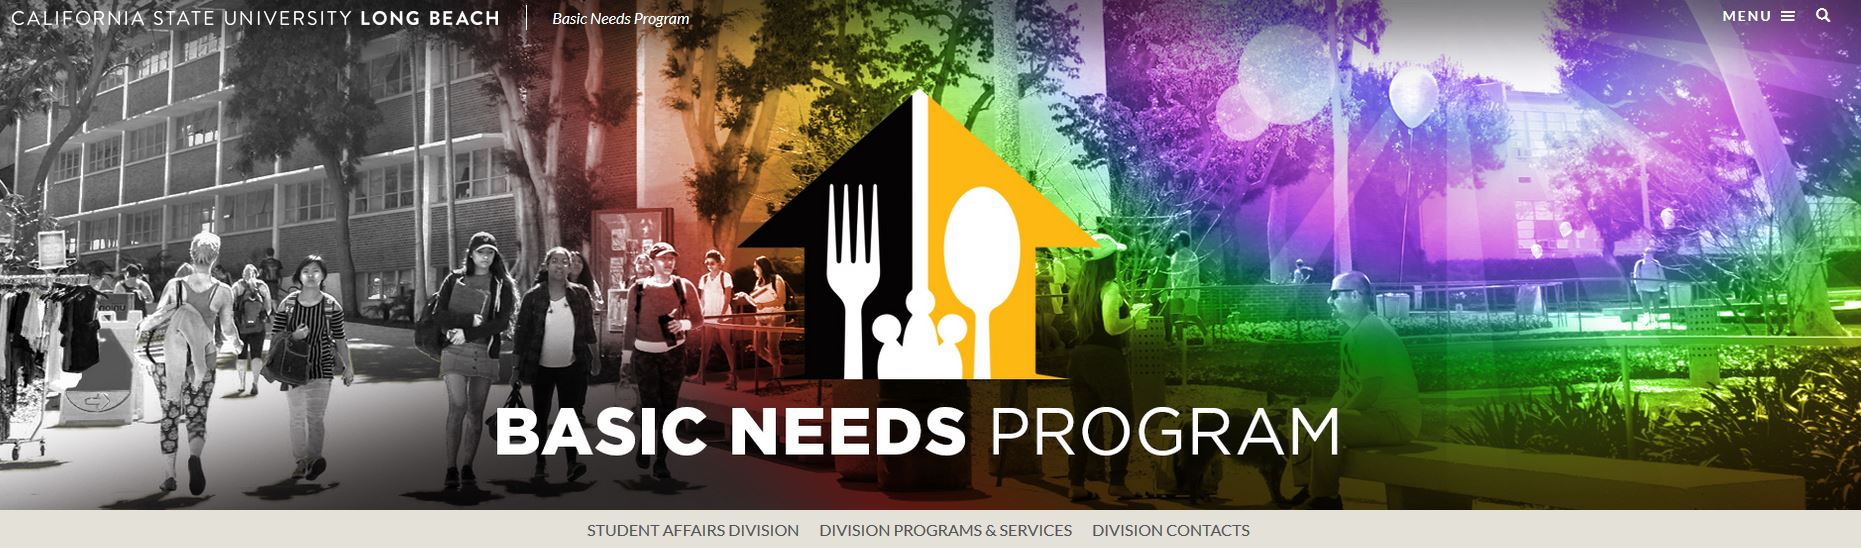 CSUSB Basic Needs website banner